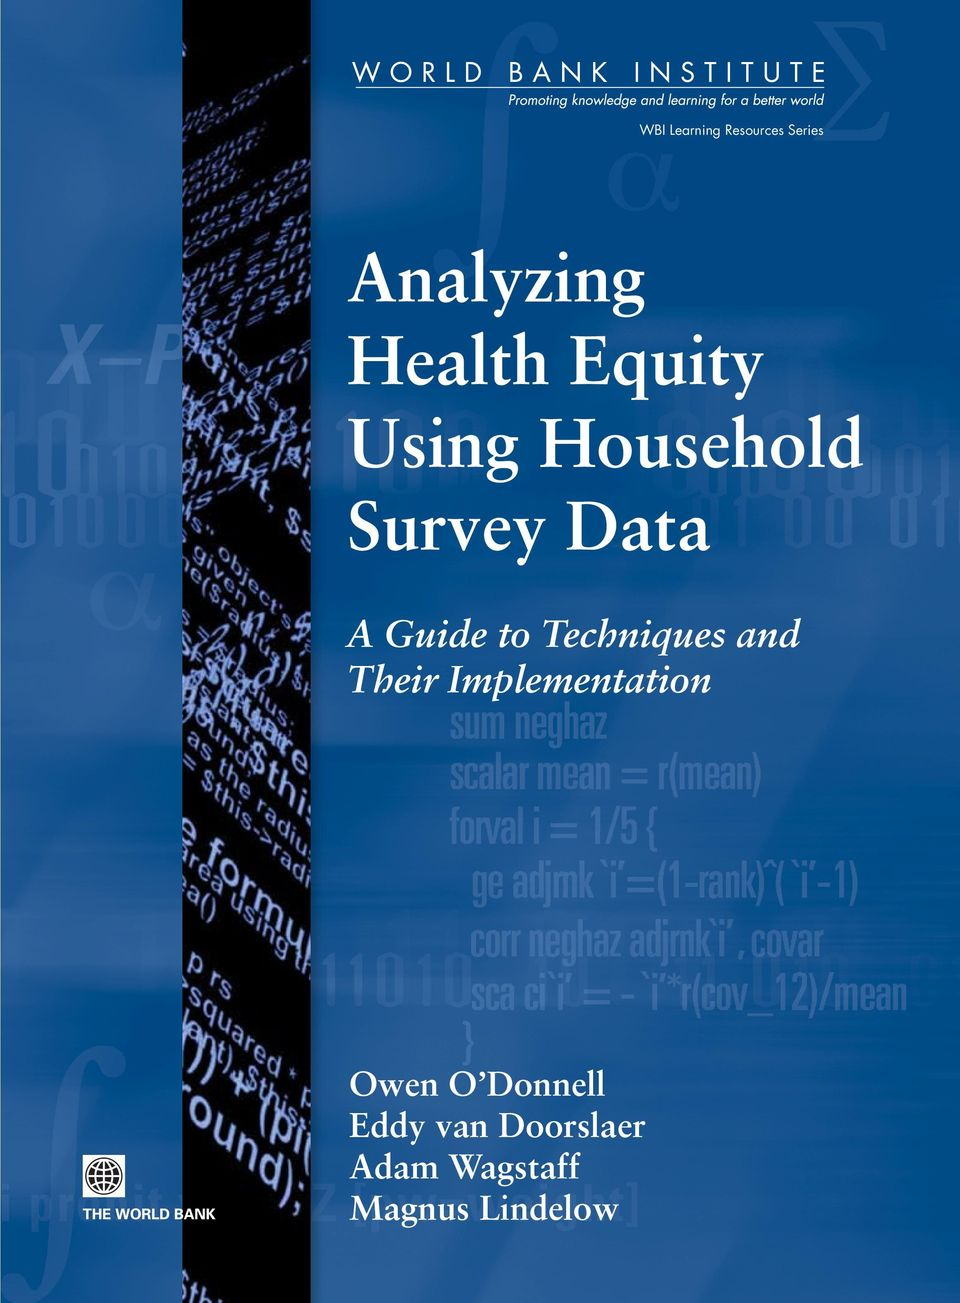 measuring health status and equity. This will be a very useful and widely cited book.